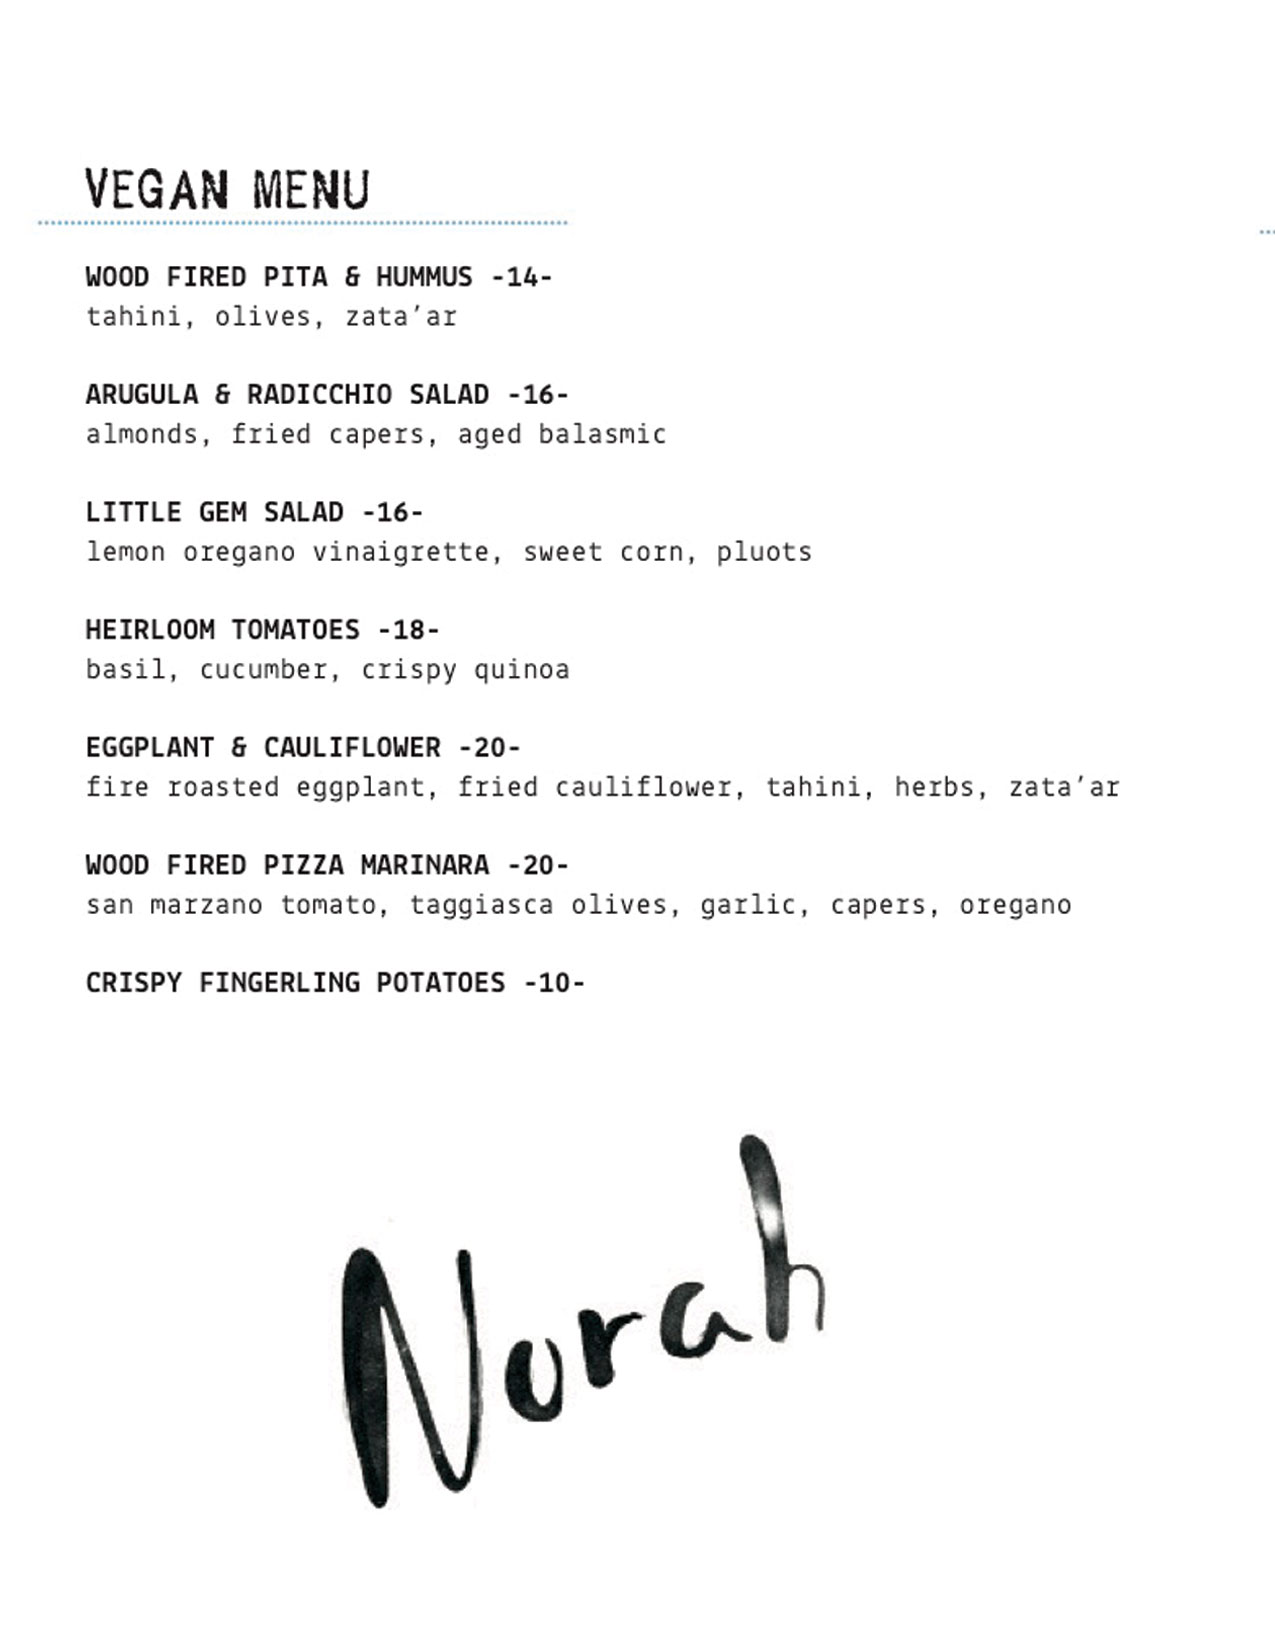 Norah Vegan Dinner Menu